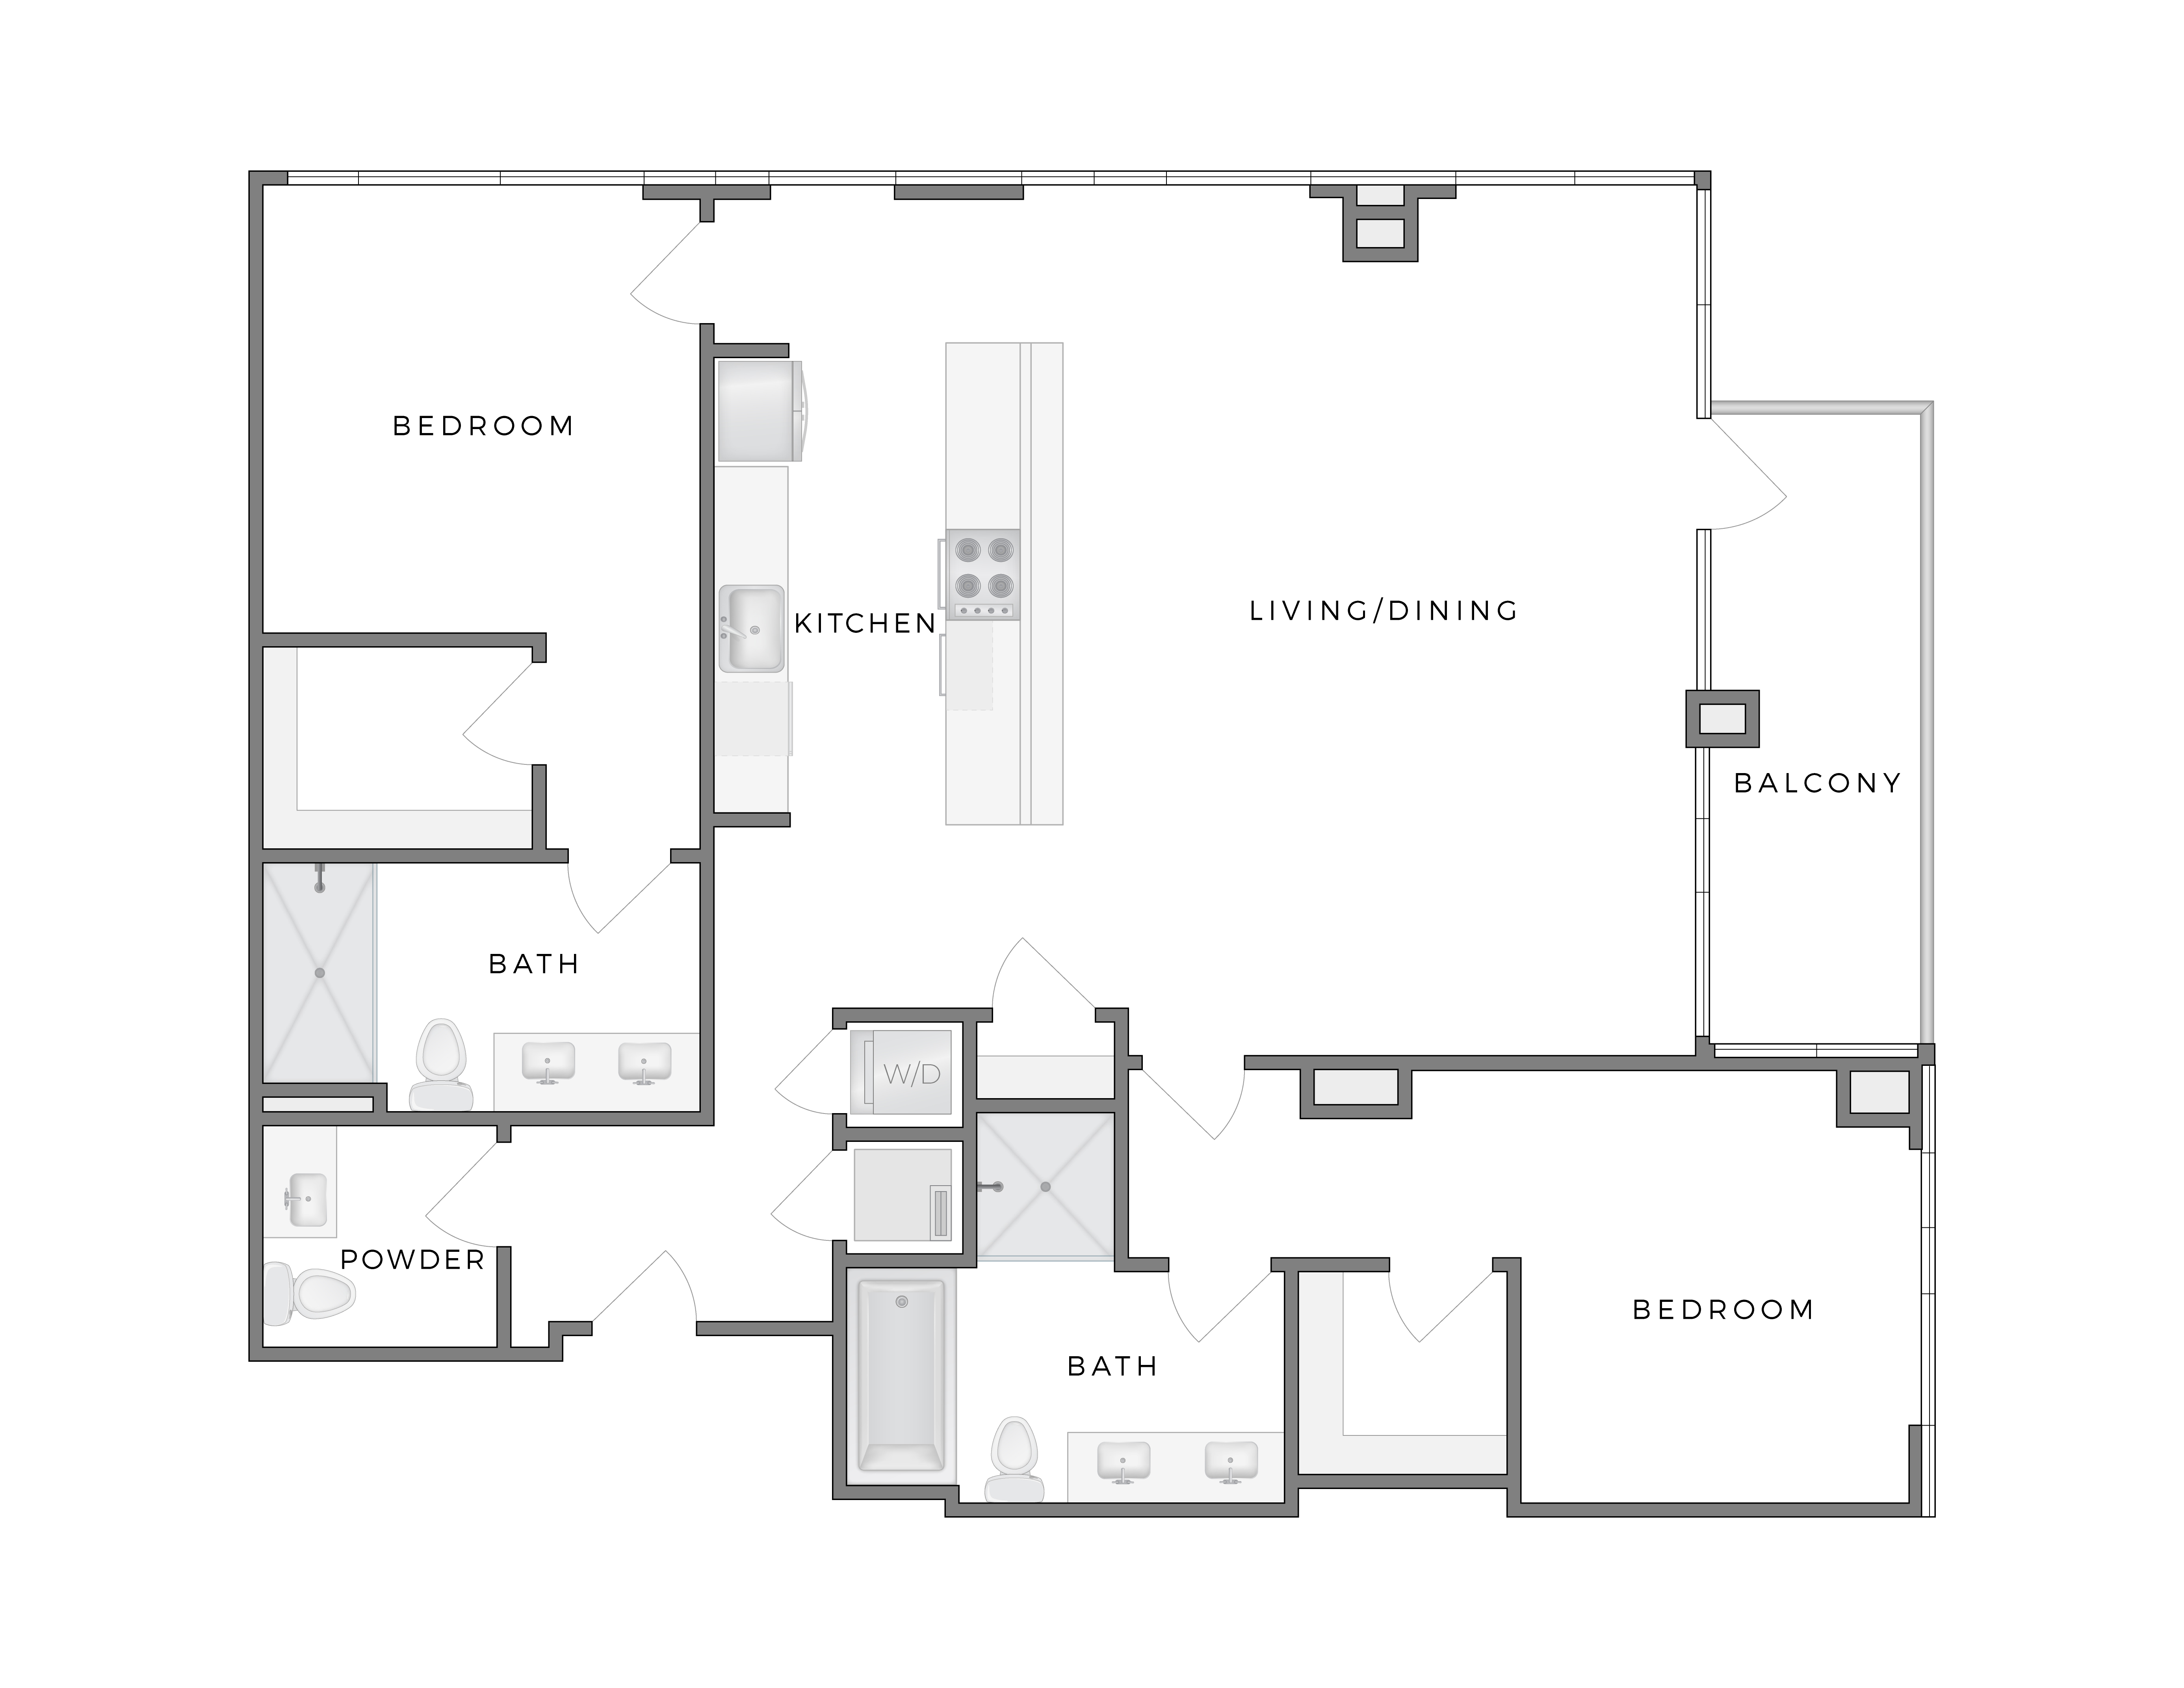 Atelier apartment Calder 2 floorplan diagram with two bedrooms, two and half bathrooms, kitchen, living dining area and patio